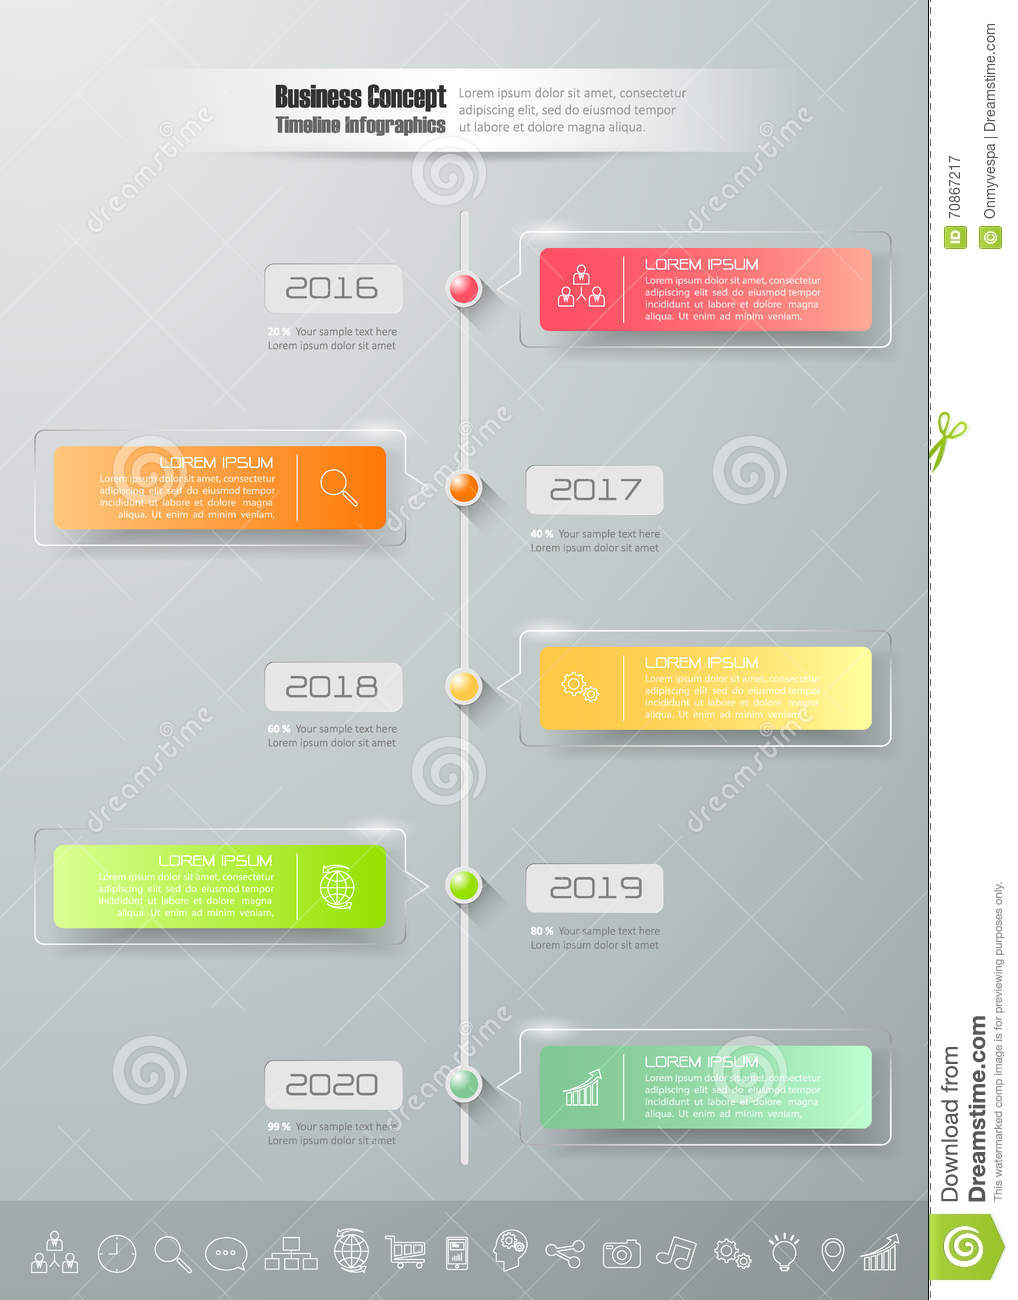 Design Business Timeline Infographic Template 5 Steps,. Mission, Info.